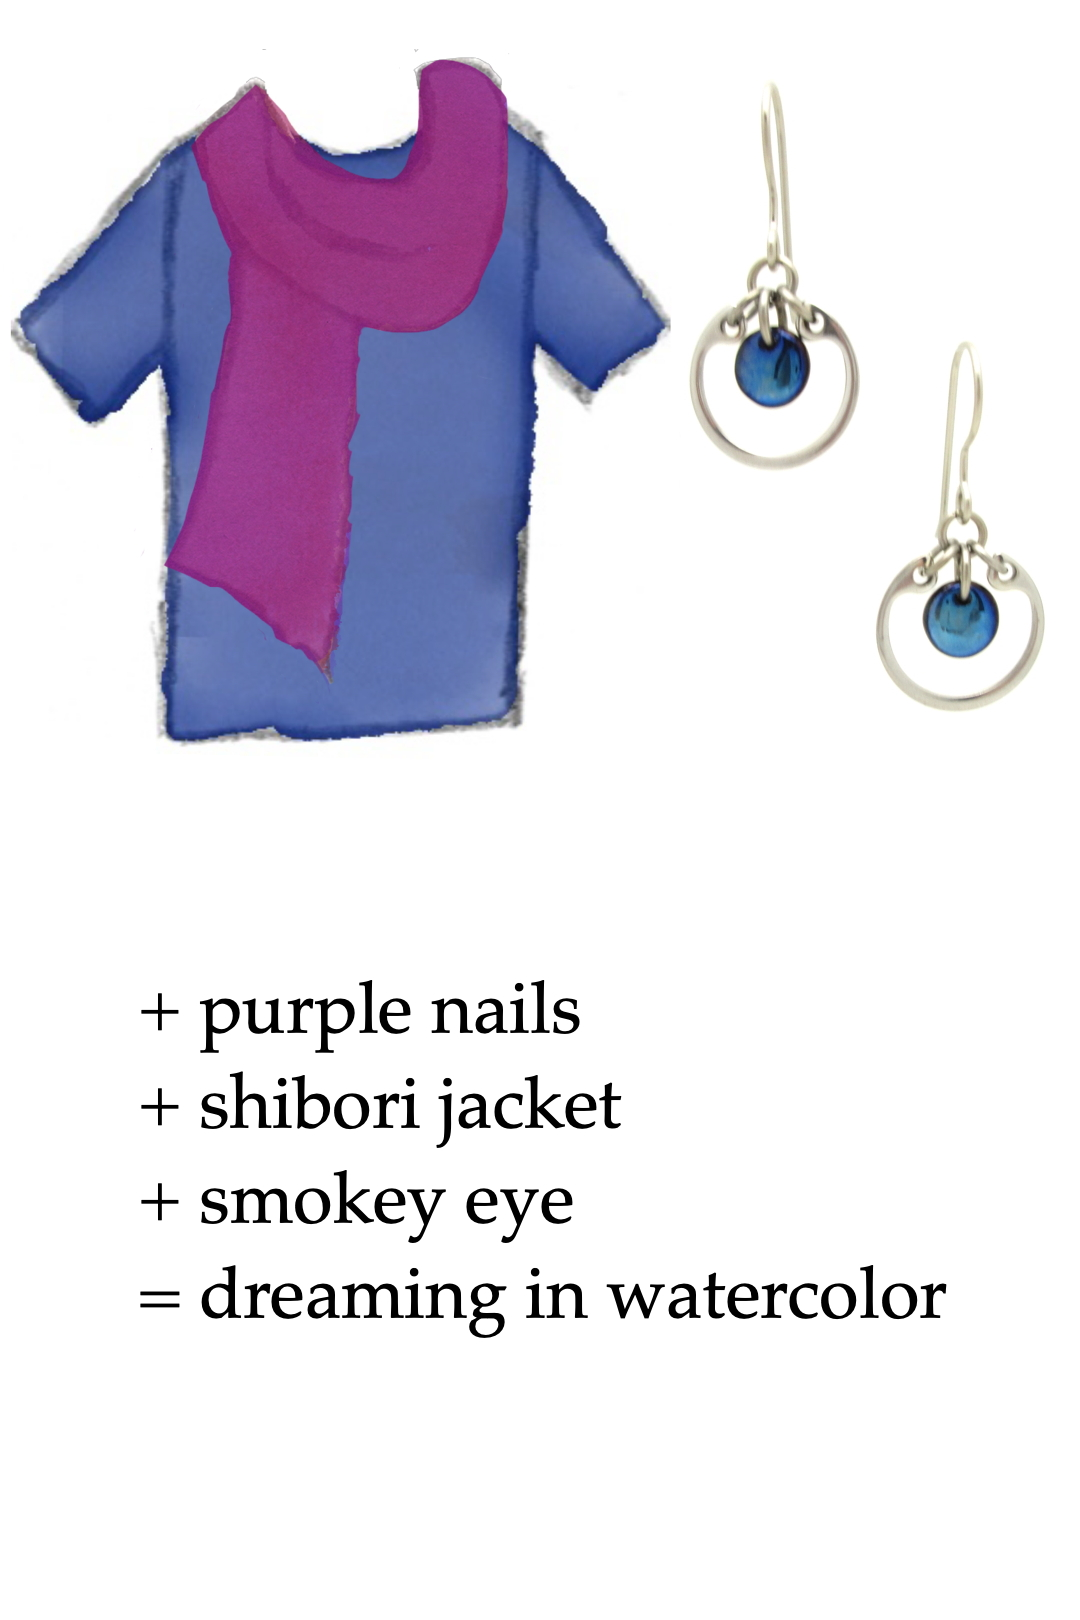 style sketch of a blue tee + fuchsia pink scarf with navy blue and silver-tone modern circle earrings by wraptillion; text on image reads + purple nails + shibori jacket + smokey eye = dreaming in watercolor